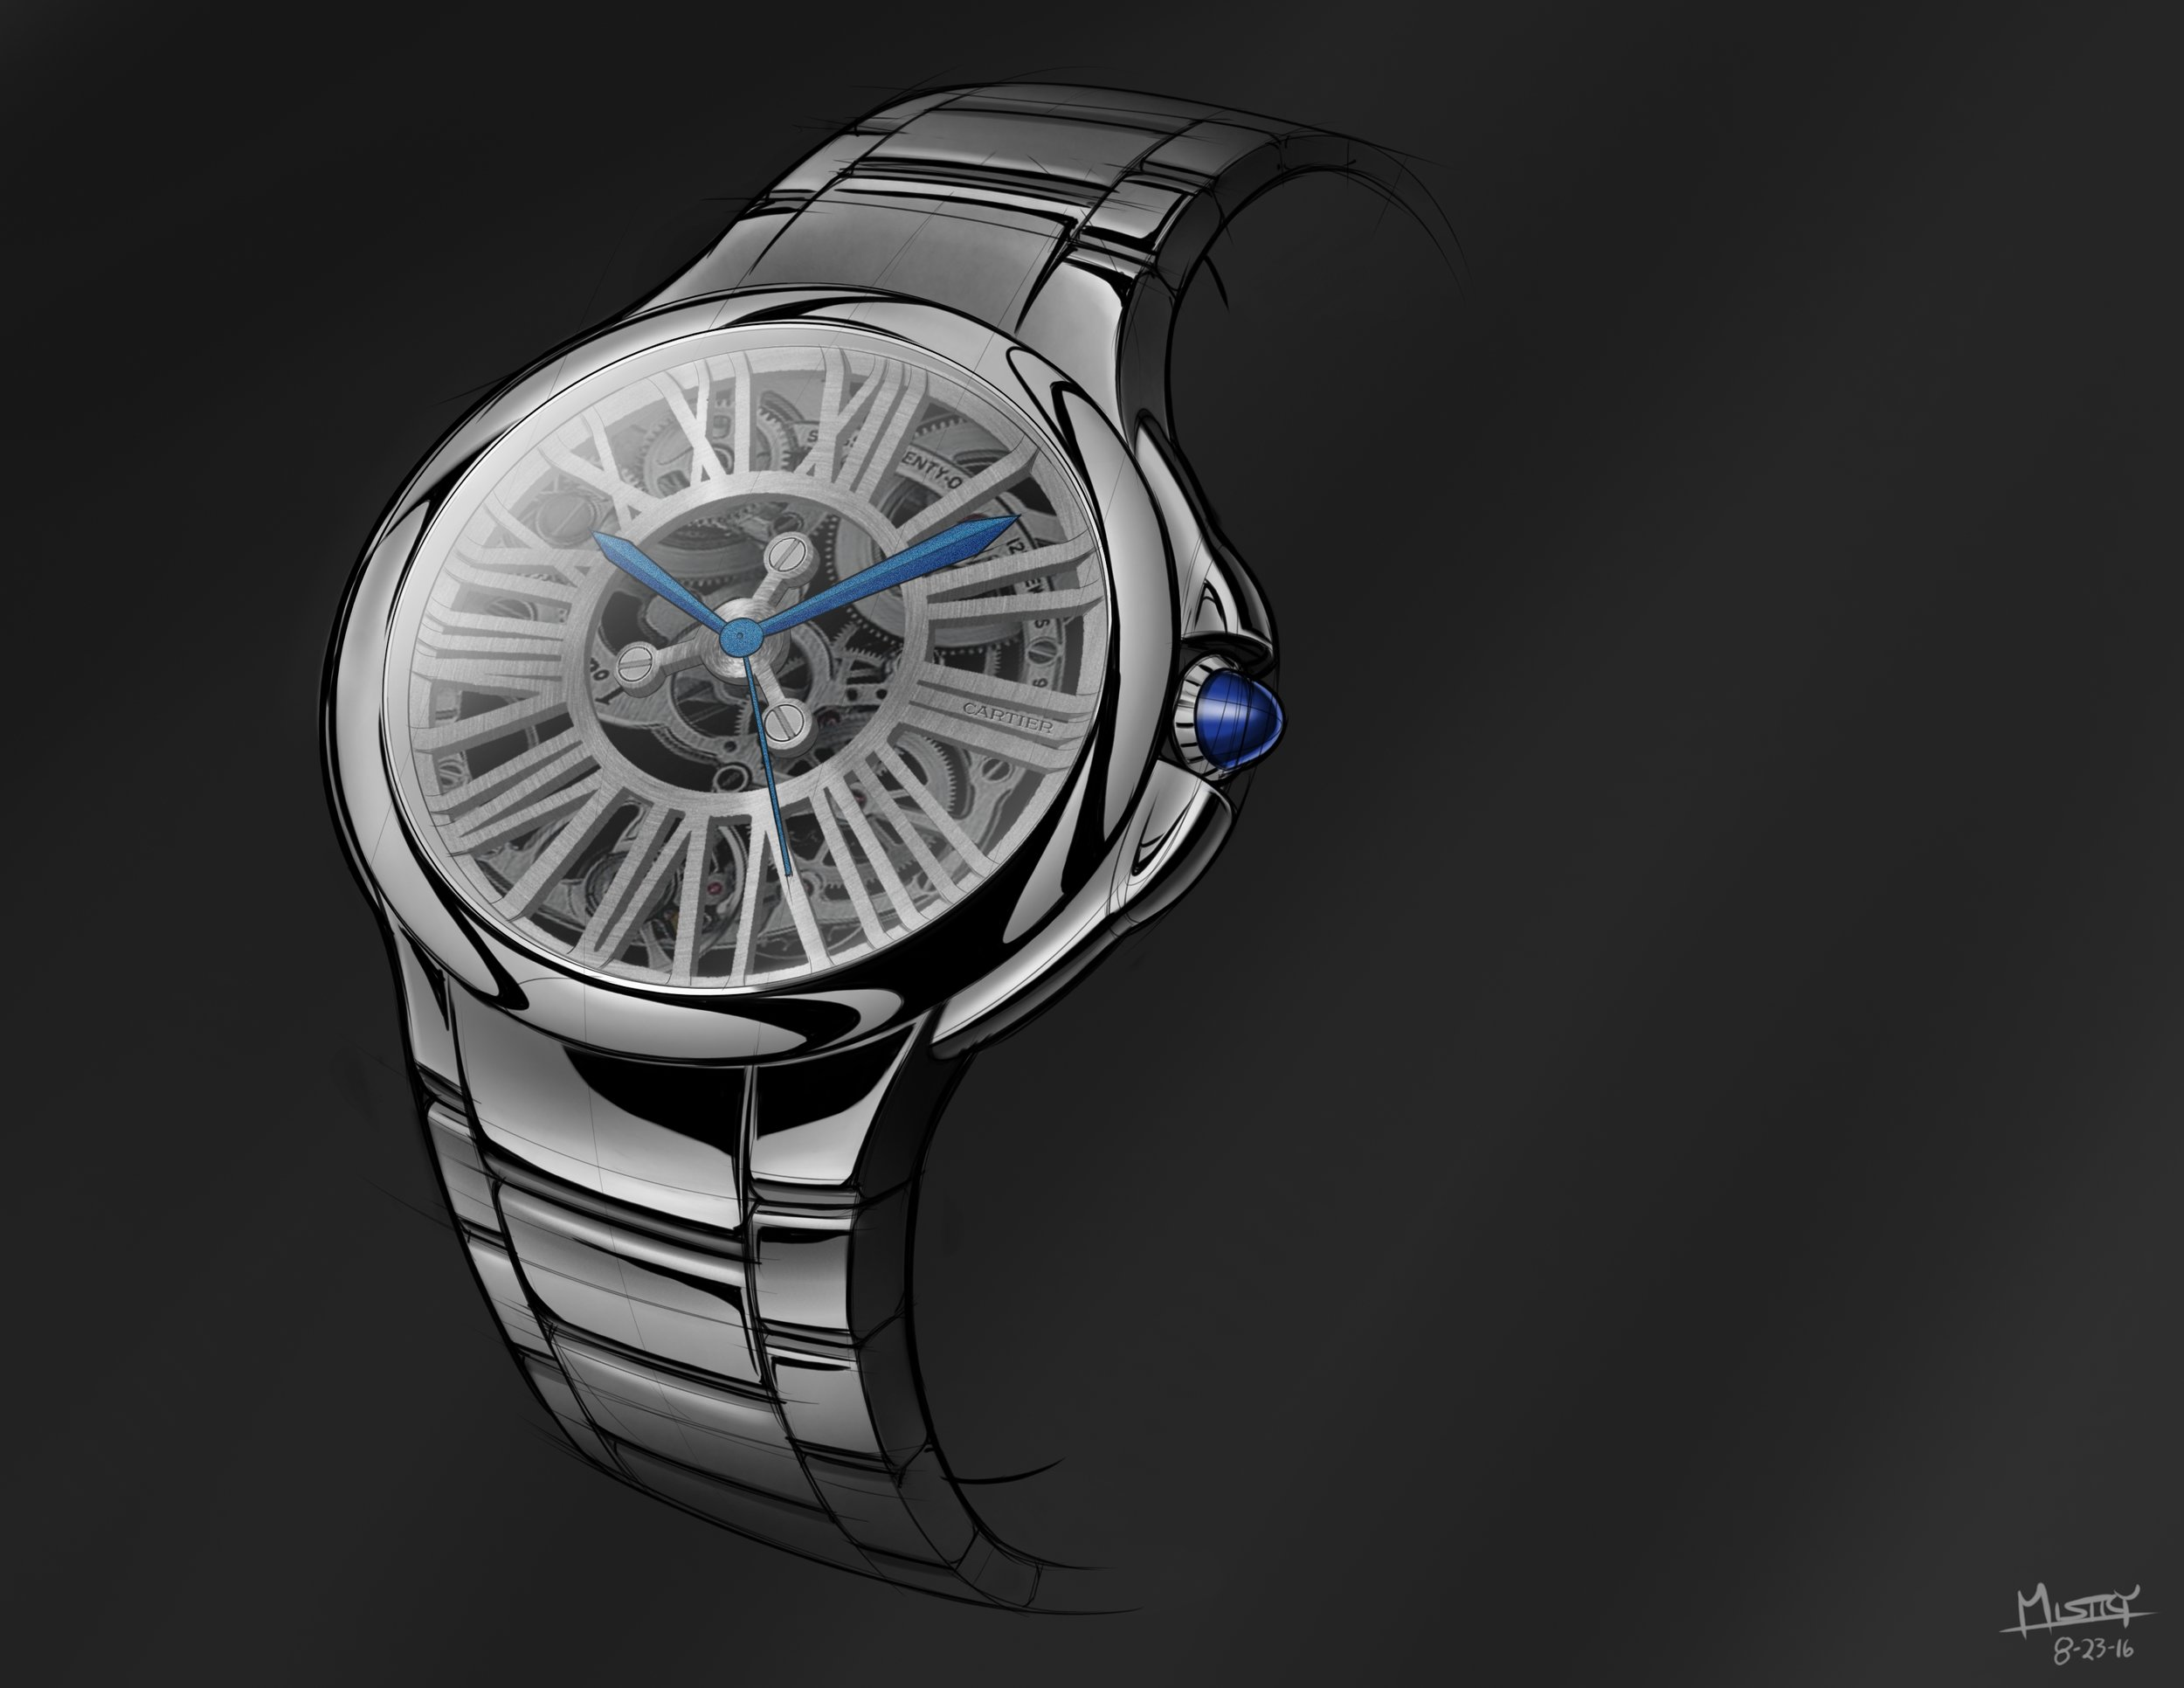 Cartier watch.jpg